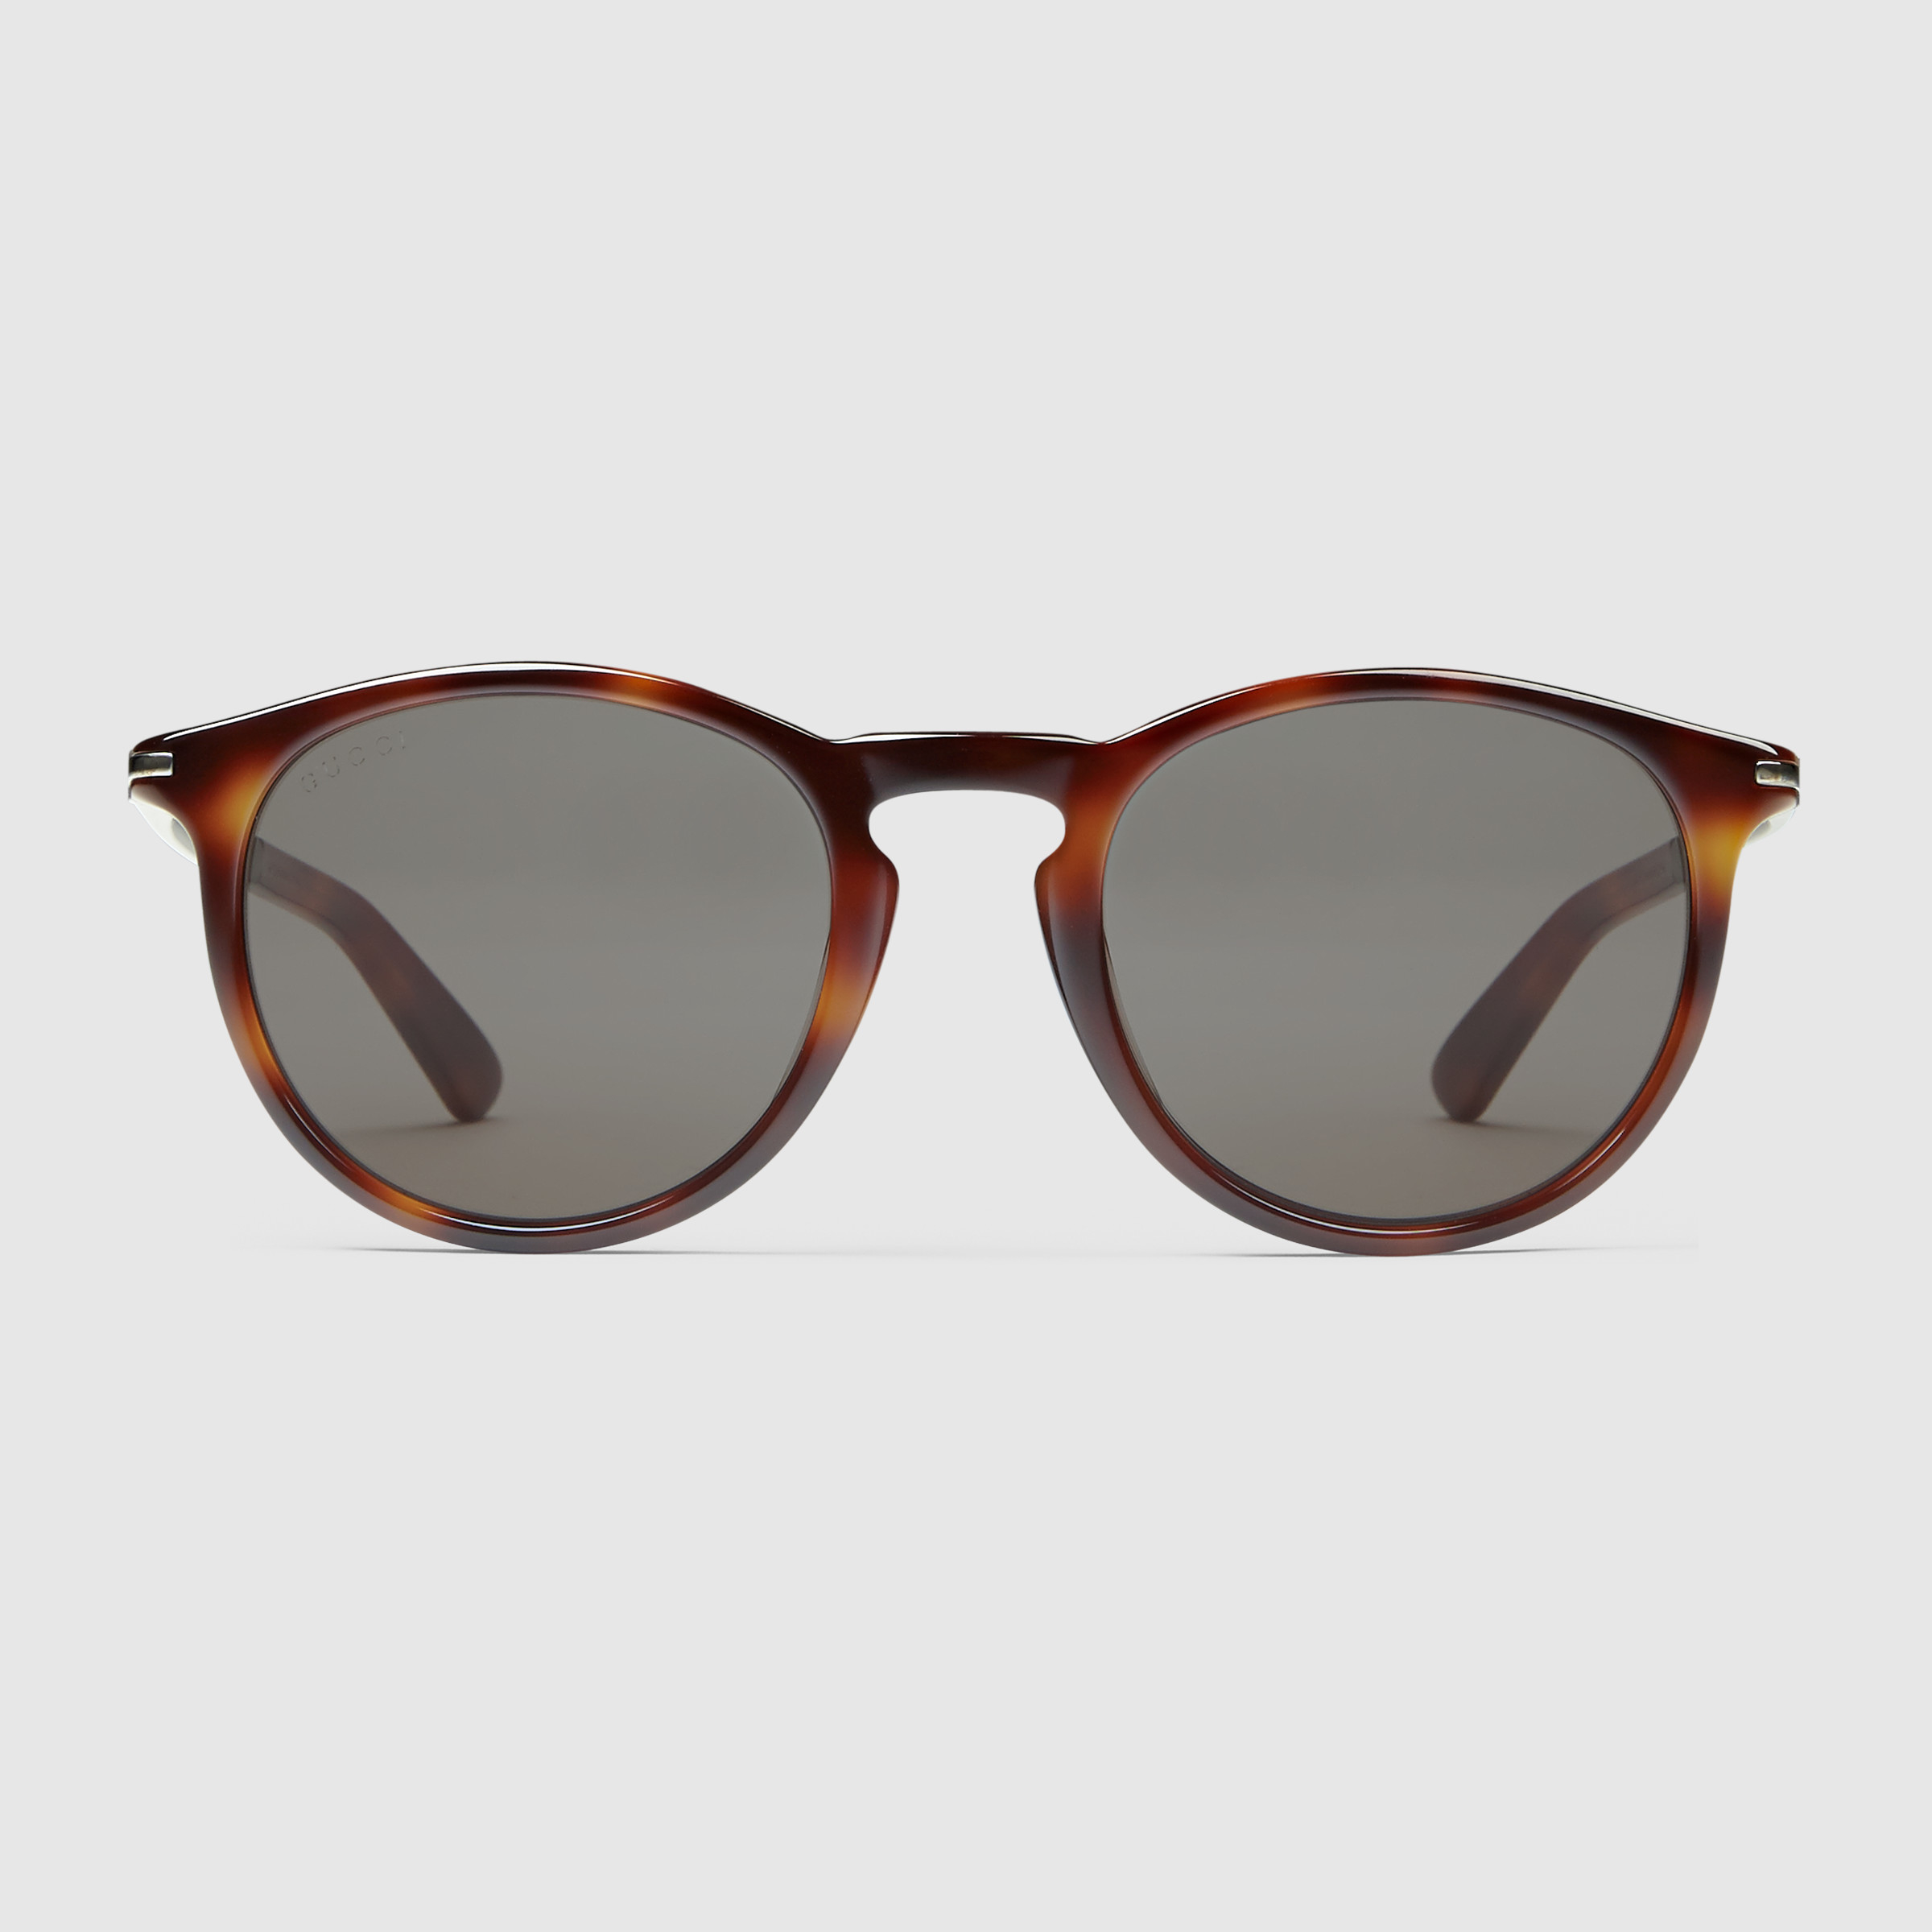 Gucci Metal Frame Glasses : Gucci Round-frame Acetate And Metal Sunglasses in Brown ...